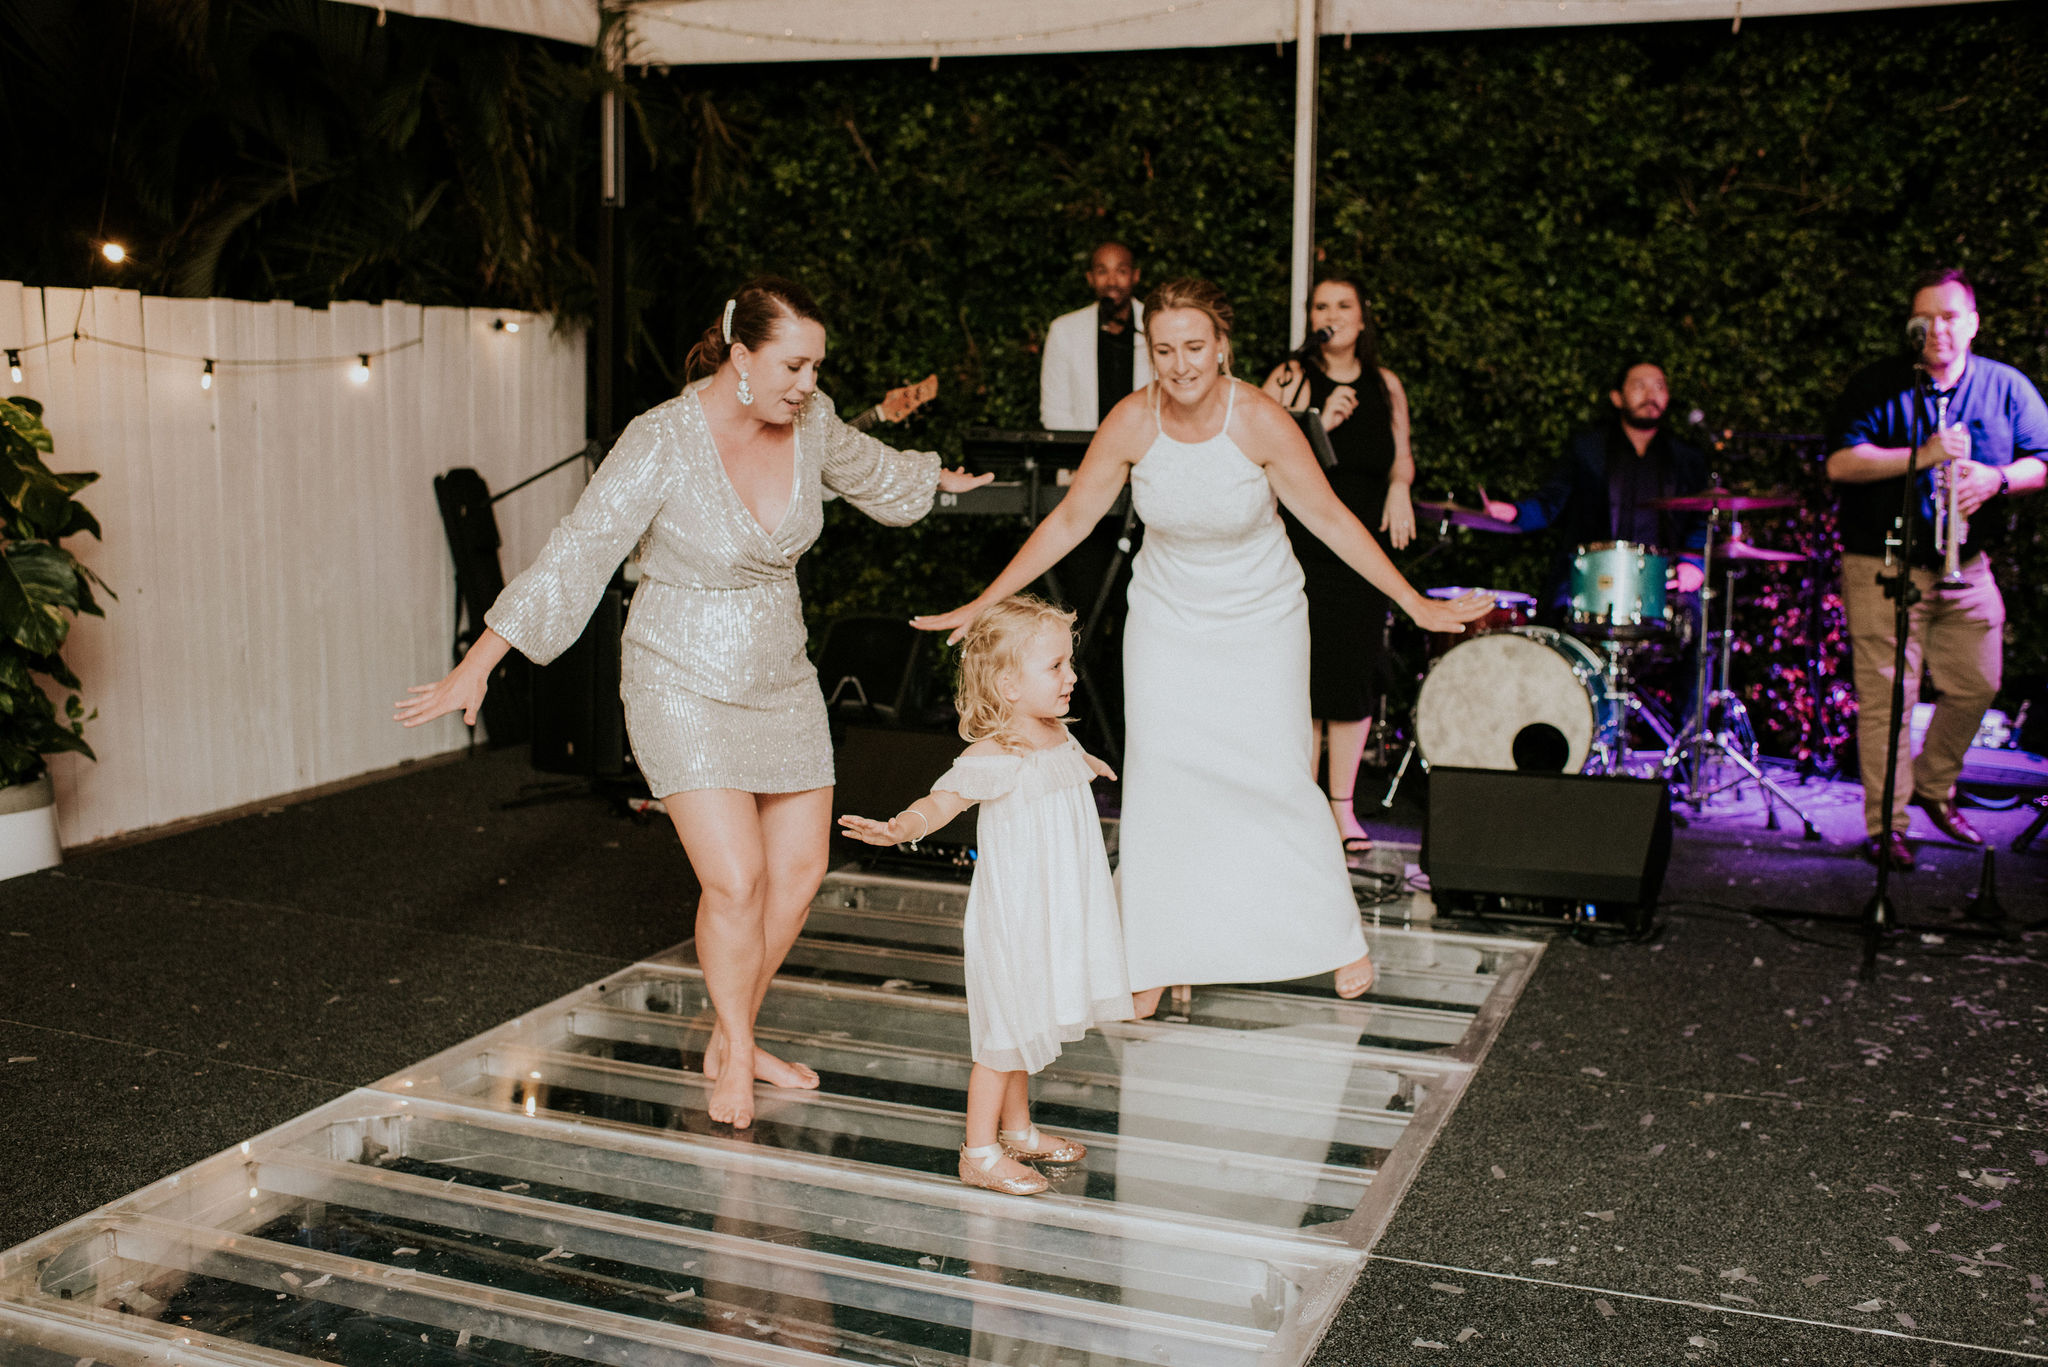 Hiring a Band For Your Backyard Wedding: Why It's Simply The Best!